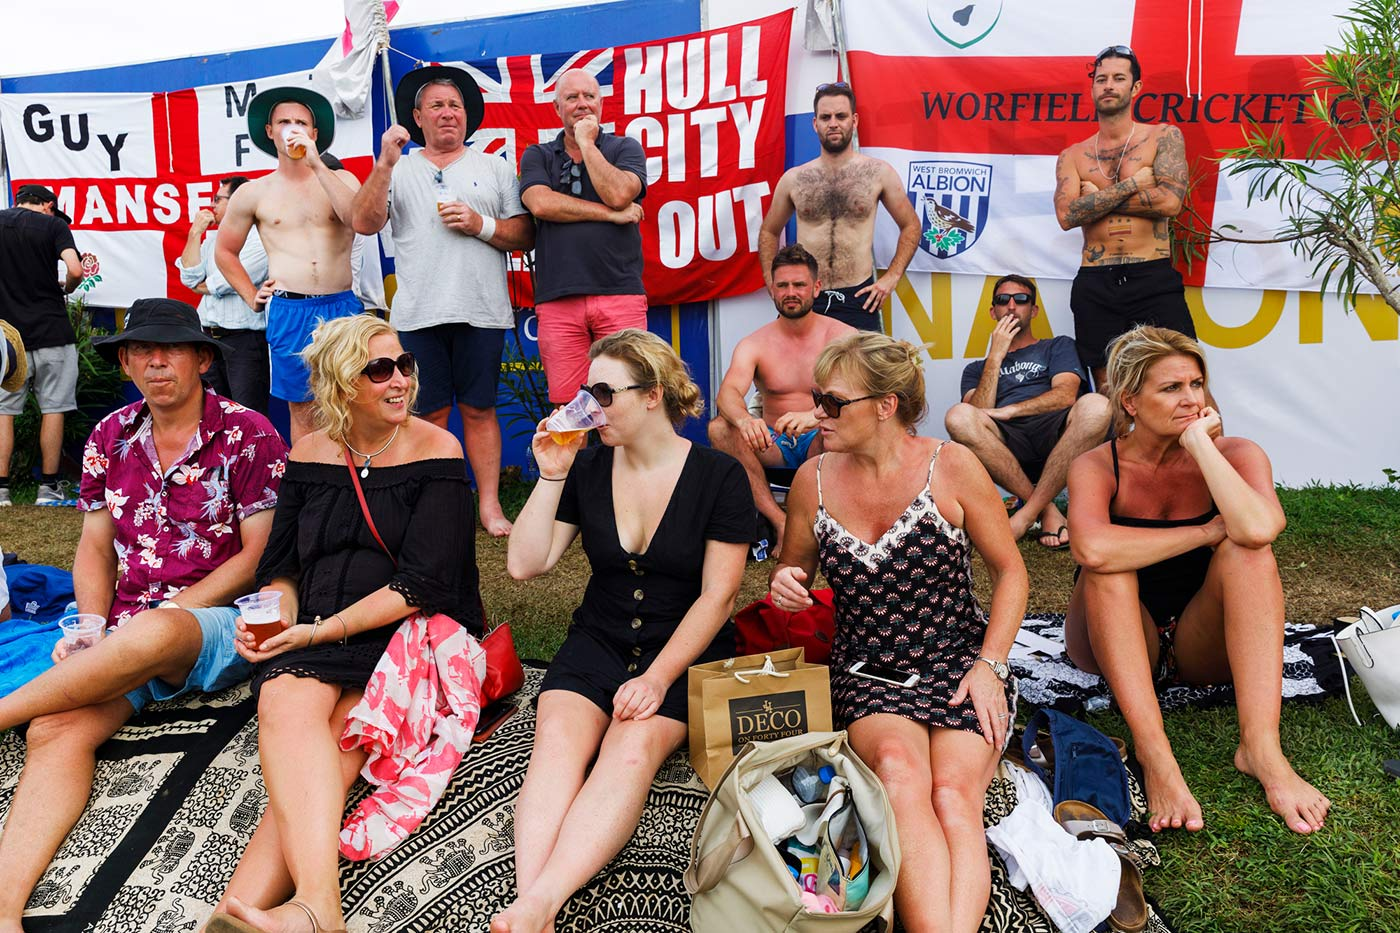 Yet more football evangelising, this time with dollops of shirtlessness